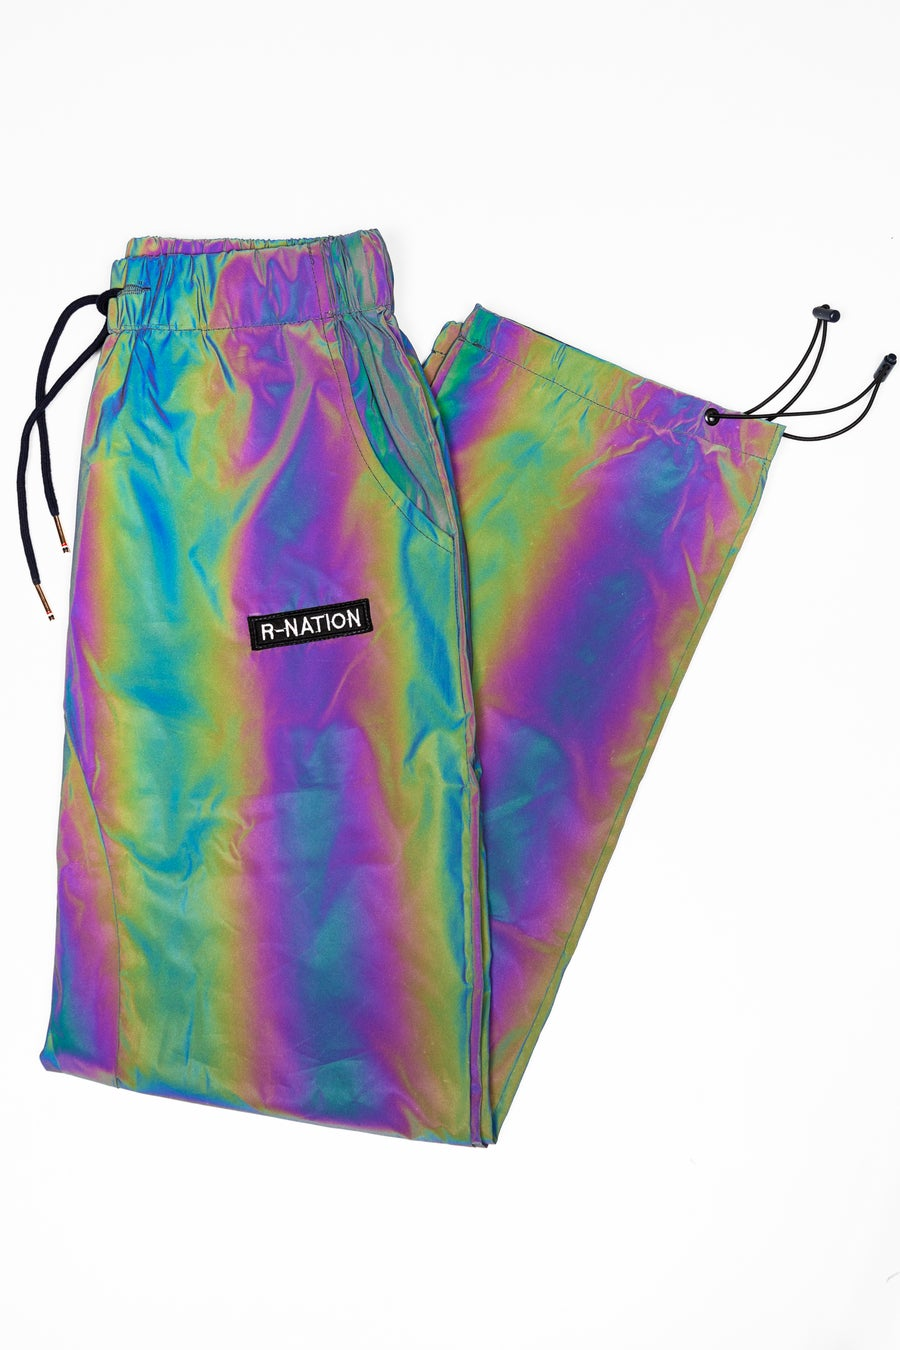 Image of R-NATION RAINBOW 3M PANTS